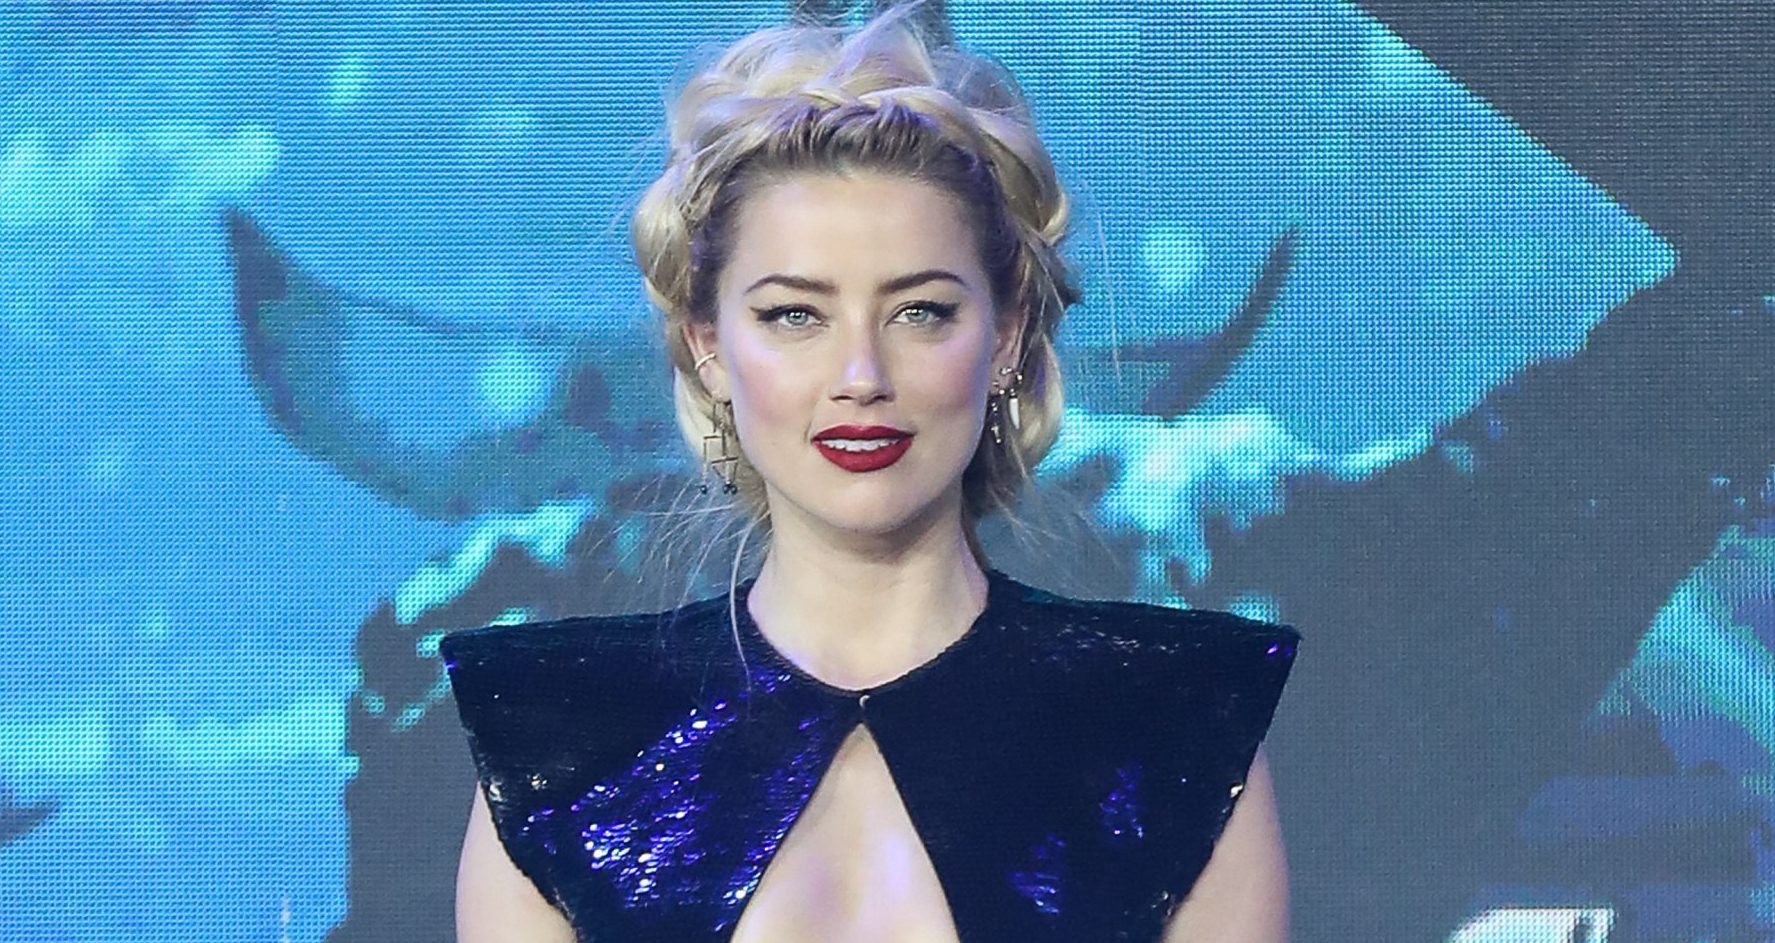 Amber Heard killing it at Aquaman photocall BEIJING, CHINA - NOVEMBER 18: American actress Amber Heard attends the premiere of director James Wan's film 'Aquaman' on November 18, 2018 in Beijing, China. (Photo by VCG/VCG via Getty Images)